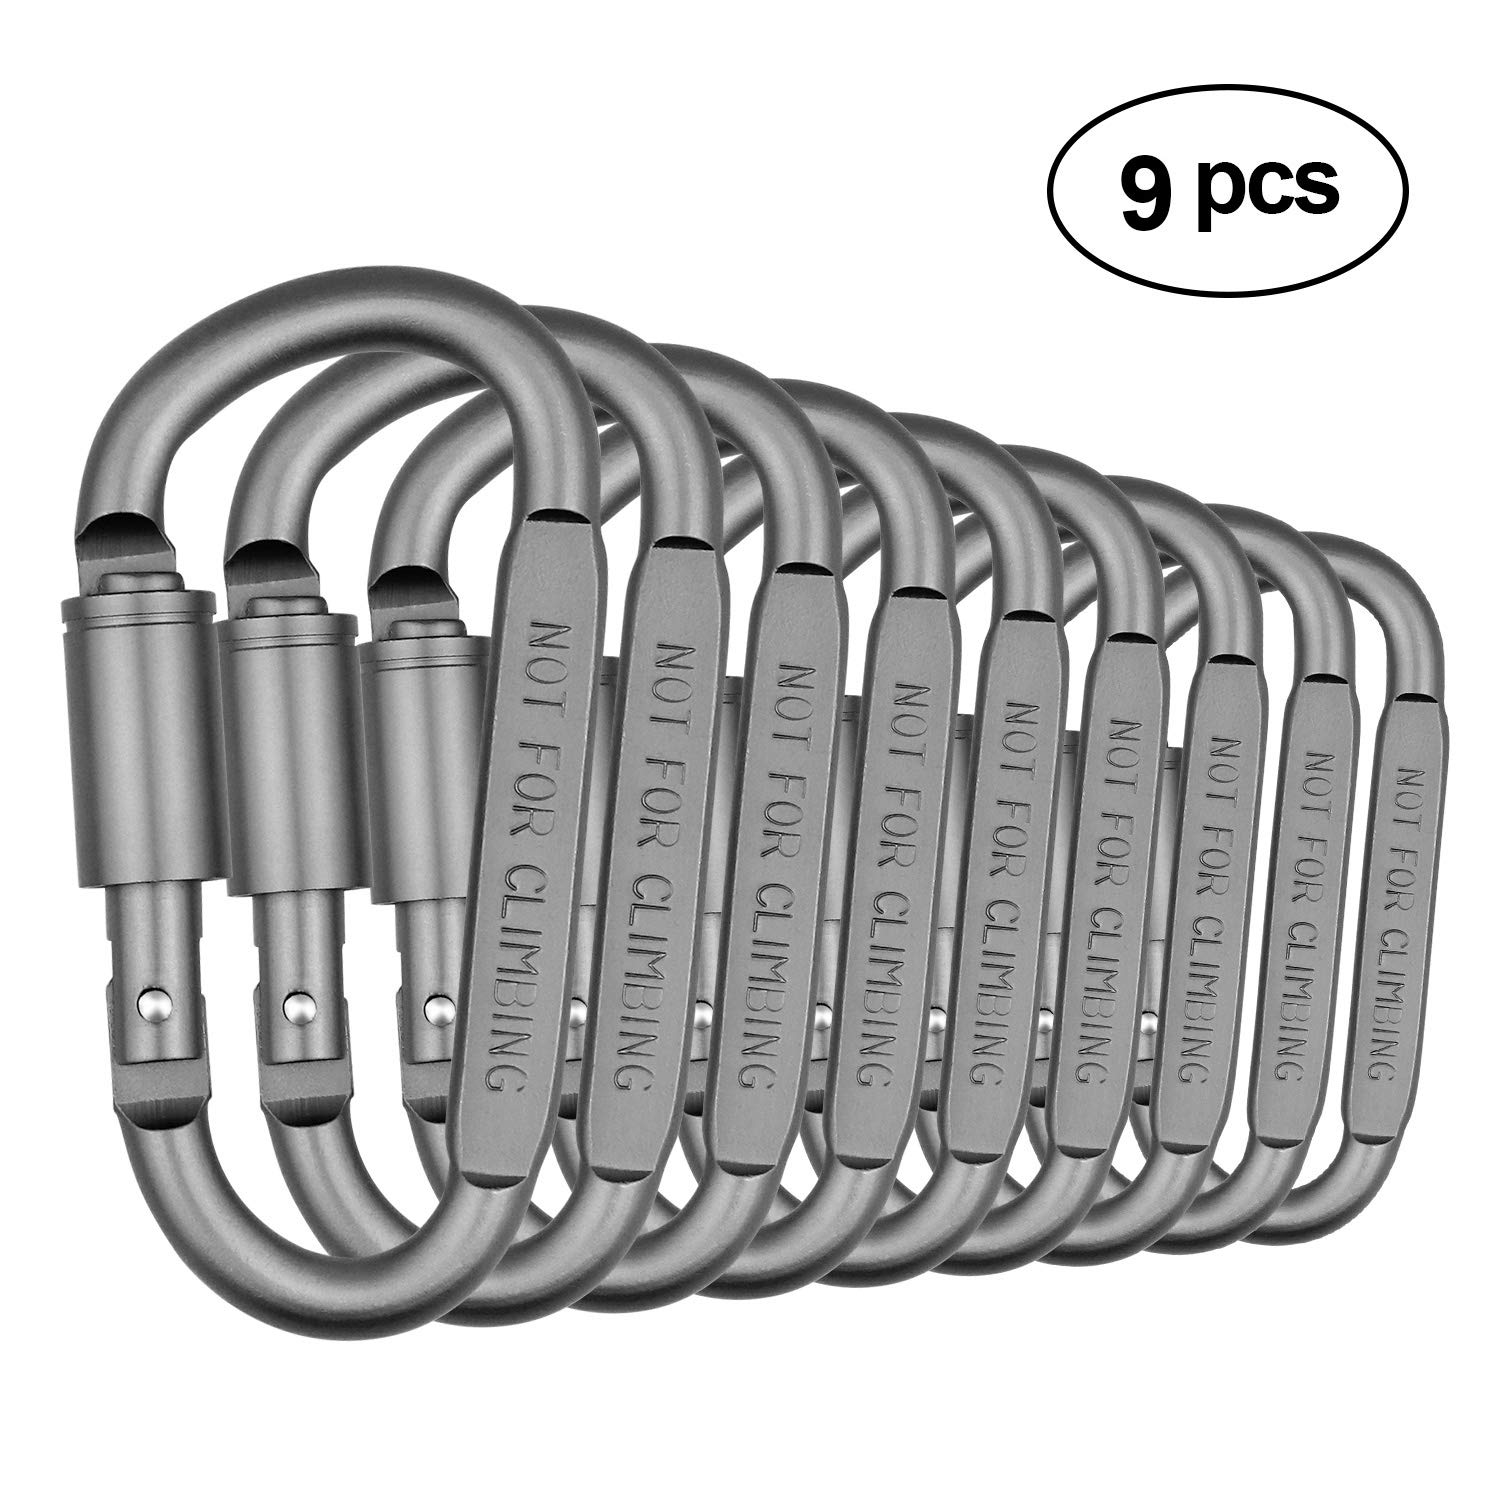 SENWOW Aluminum Alloy D-Ring High Strength Carabiner Key Chain Clip Hook For Camping Hiking (Not for Climbing)